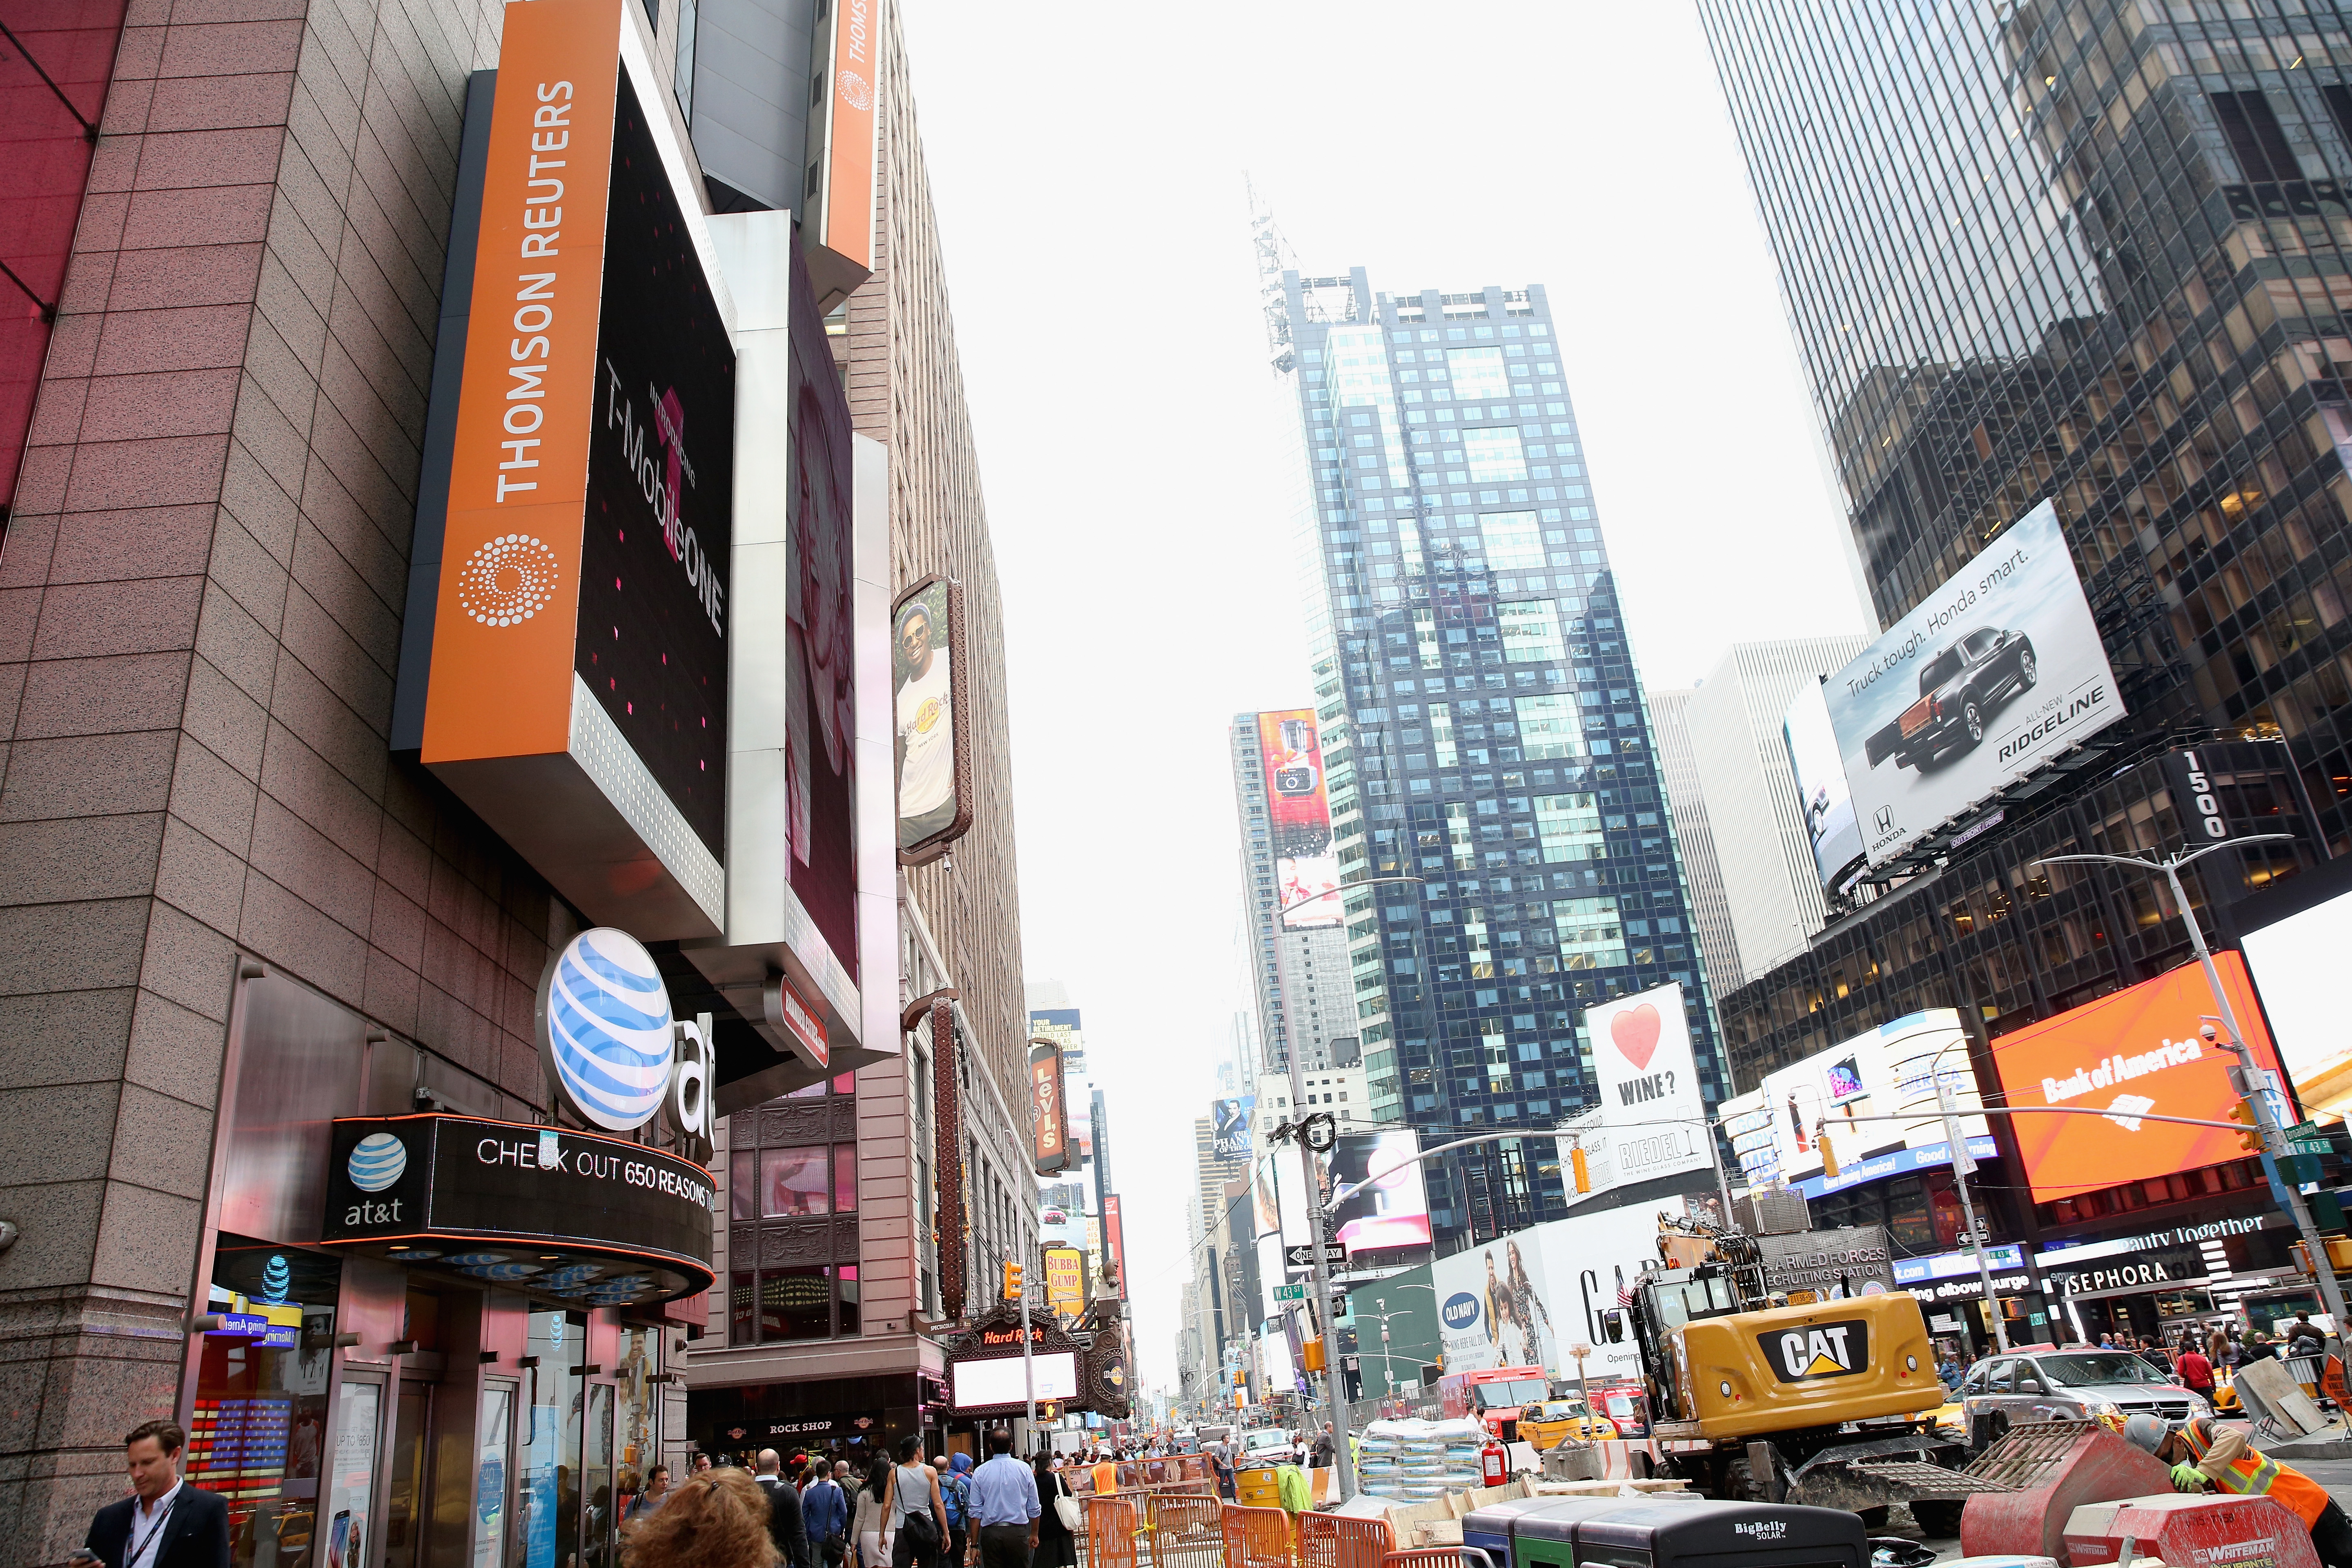 A view outside at Thomson Reuters during 2016 Advertising Week in New York City.